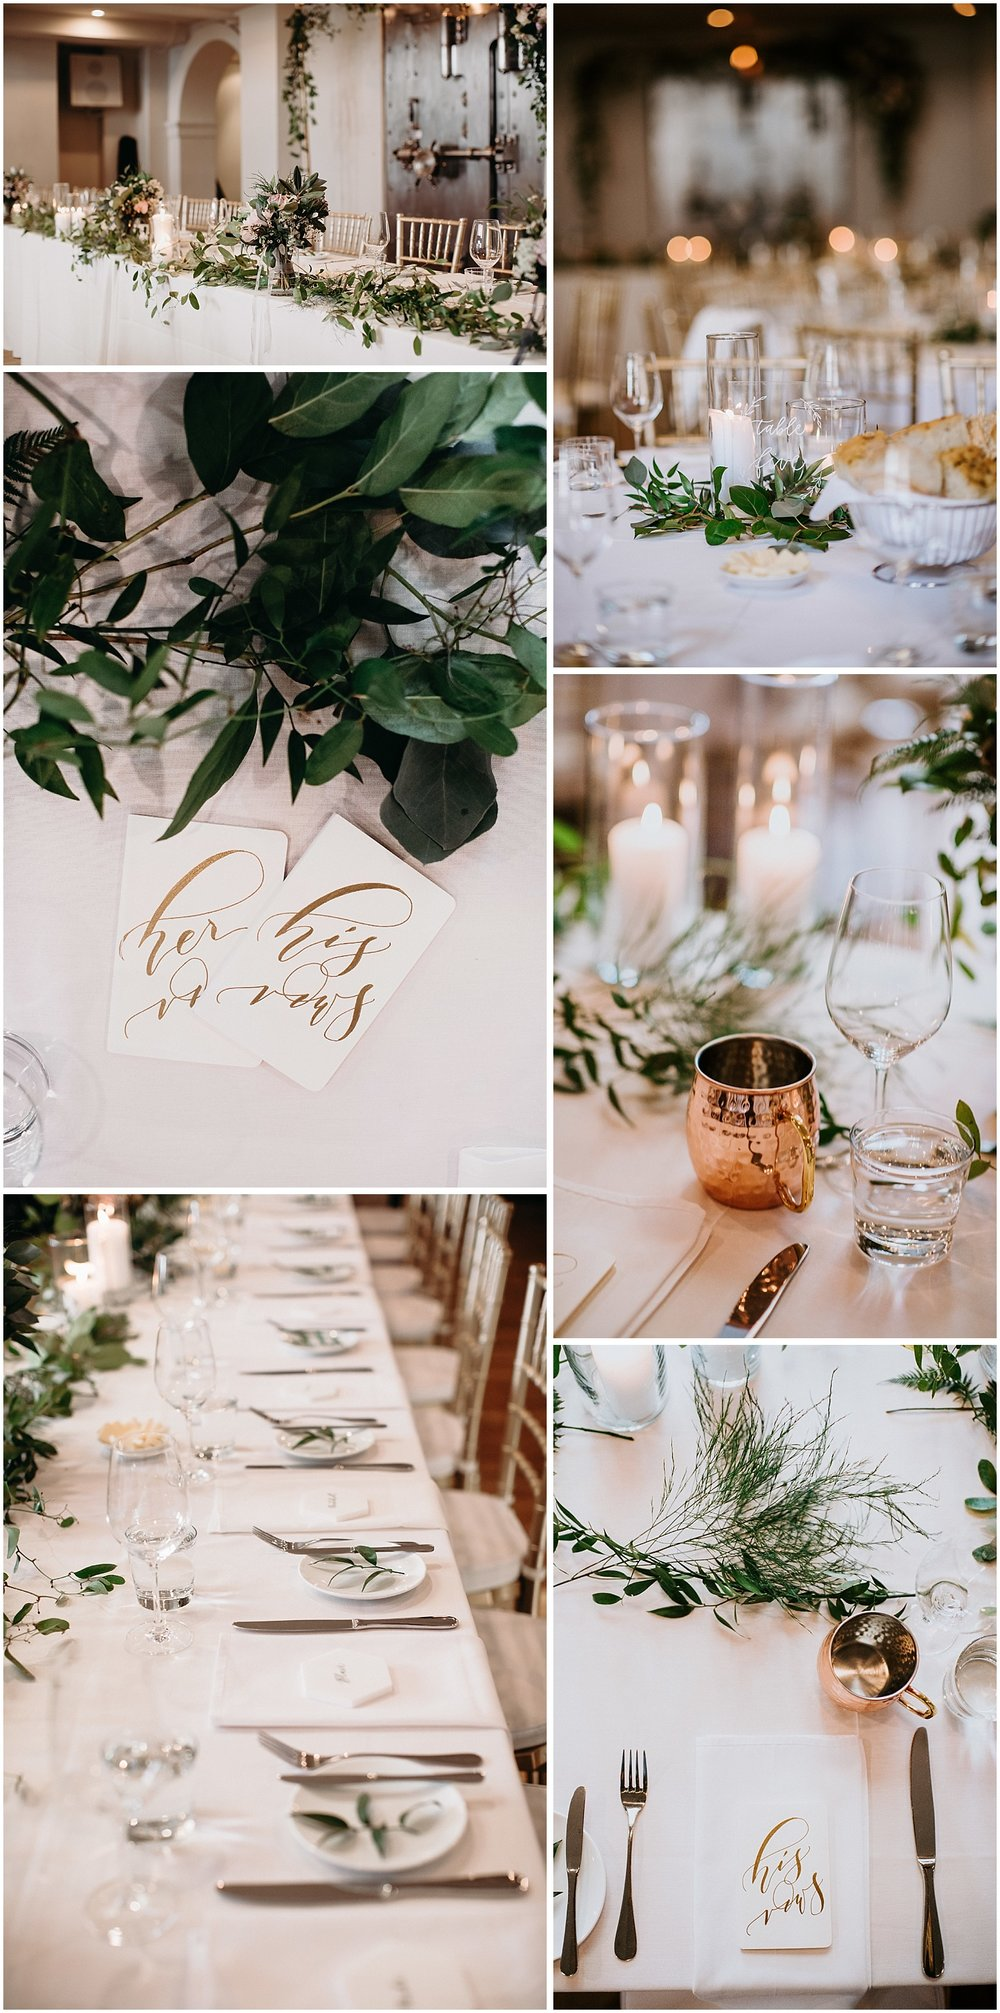 The Permanent rustic chic wedding reception details with gold accents